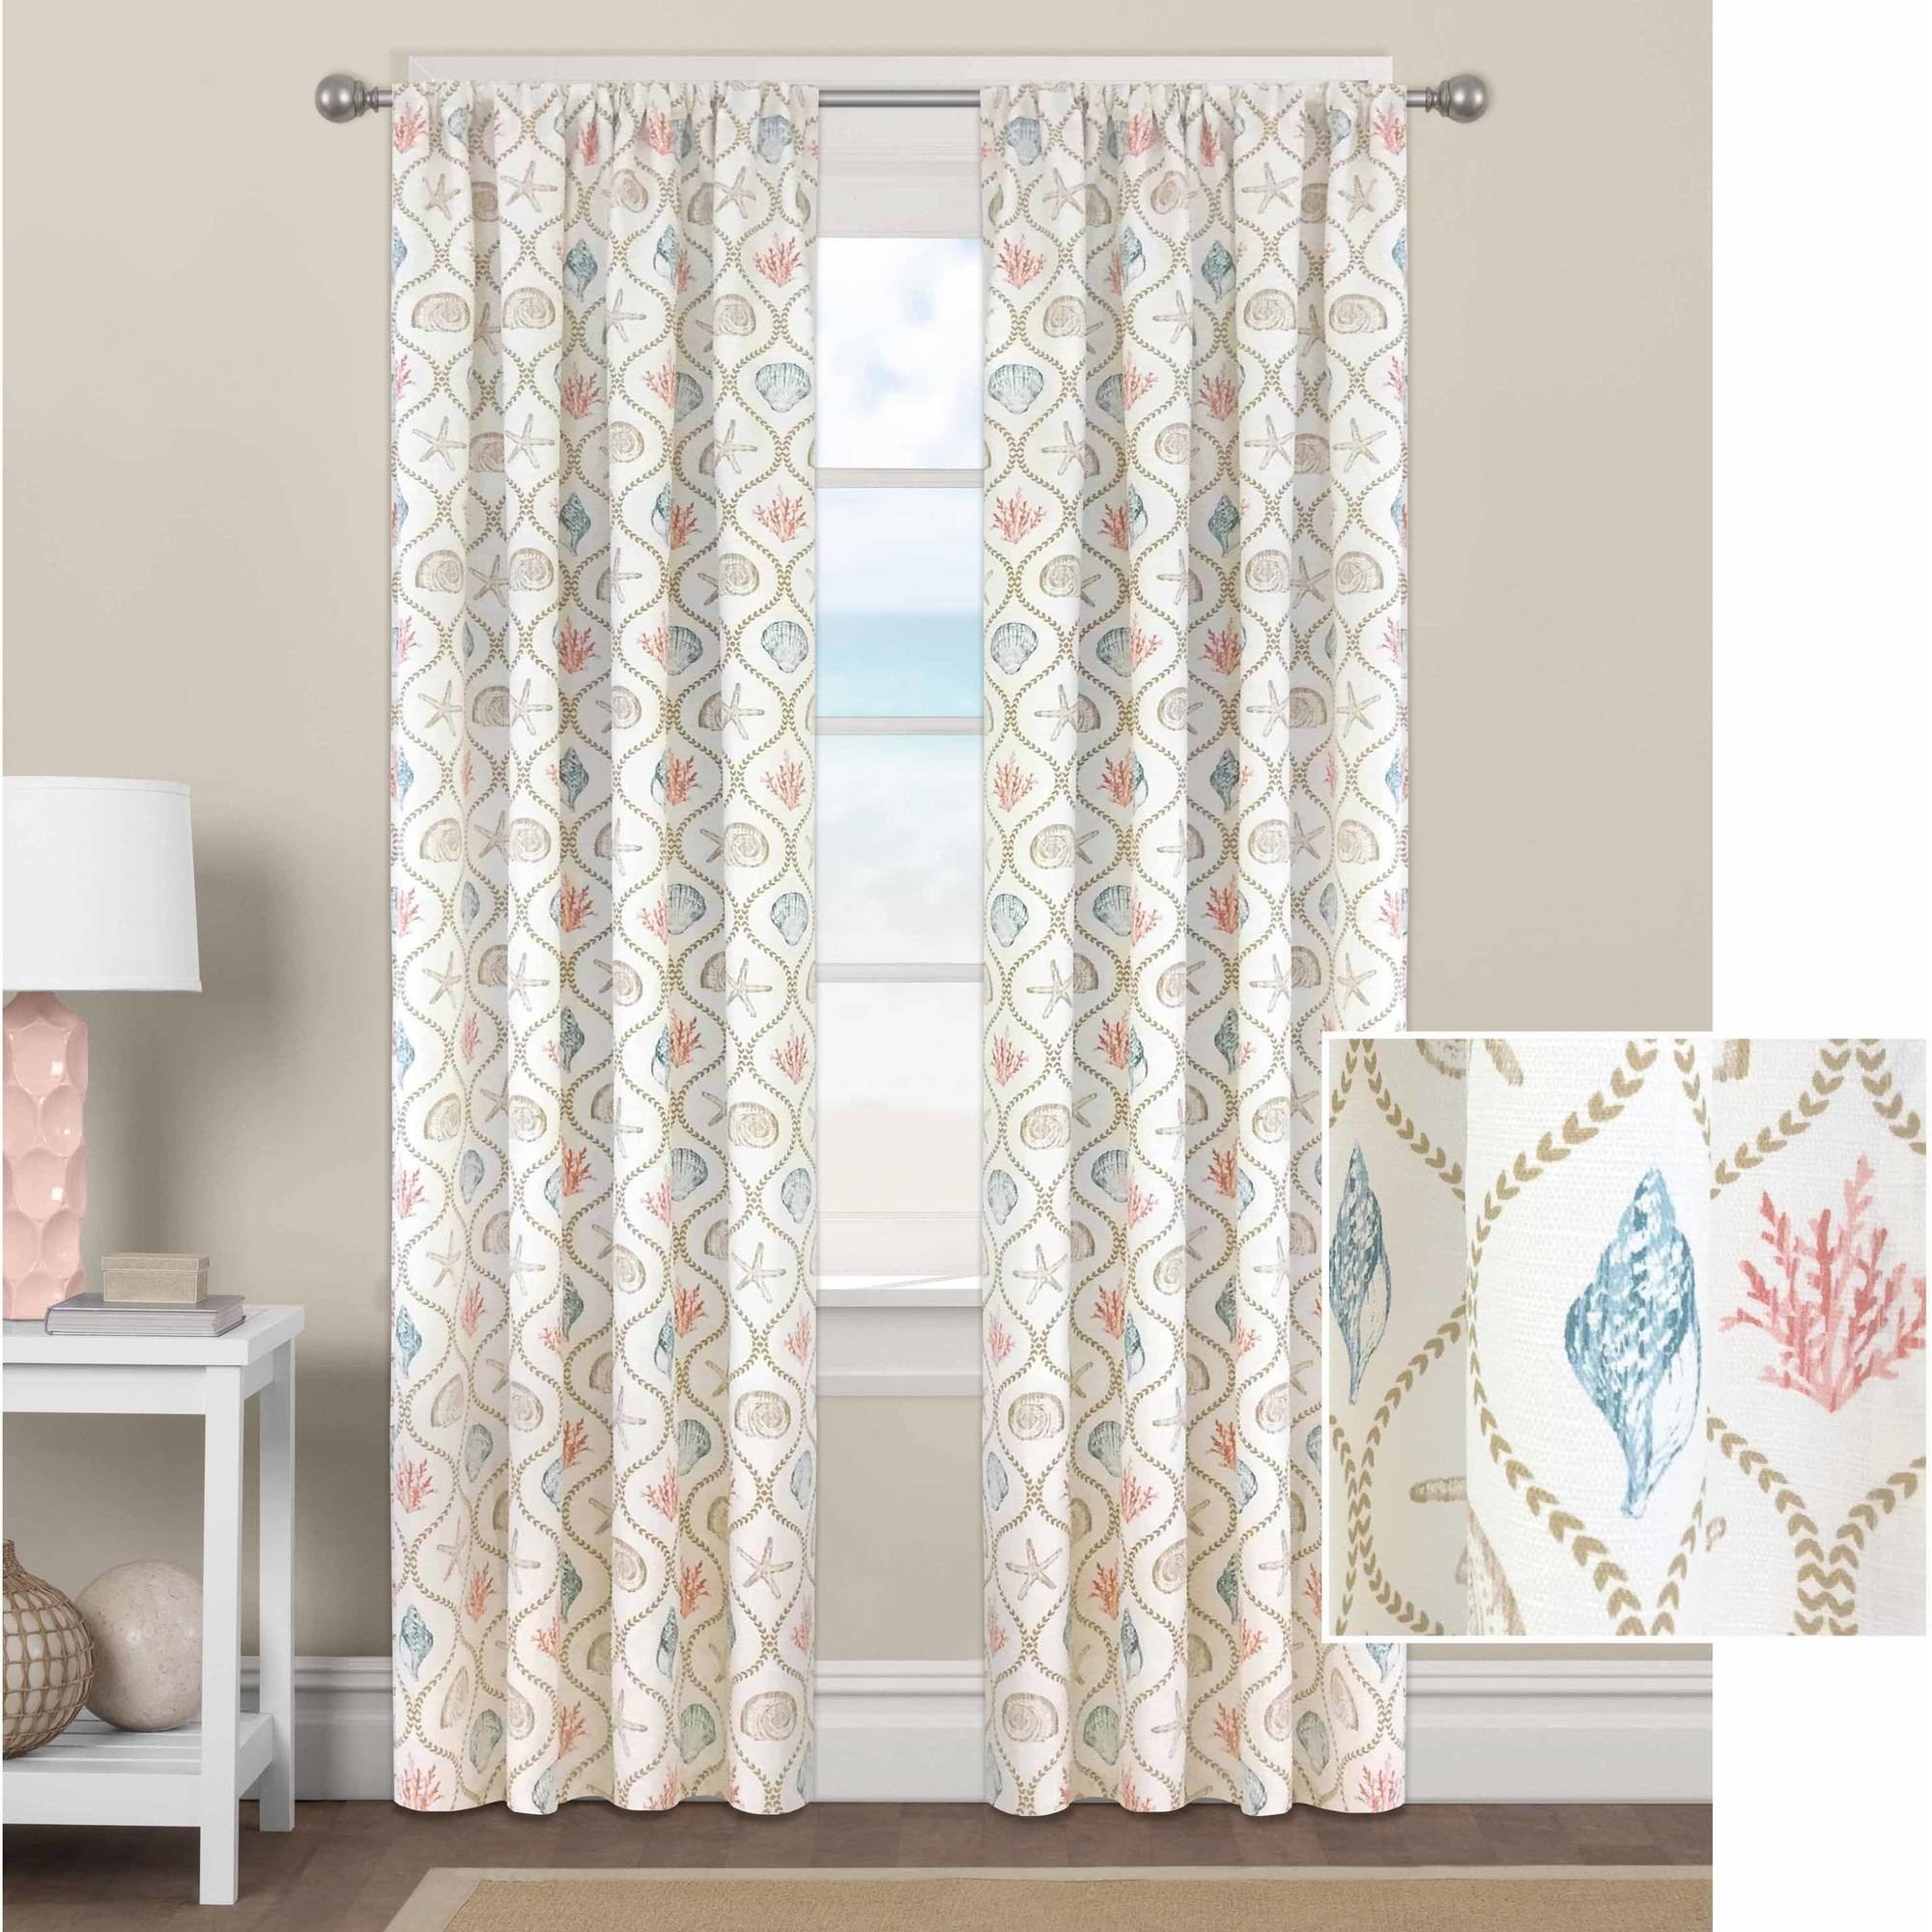 Better Homes and Gardens Coral/Aqua Ogee Shells Curtain